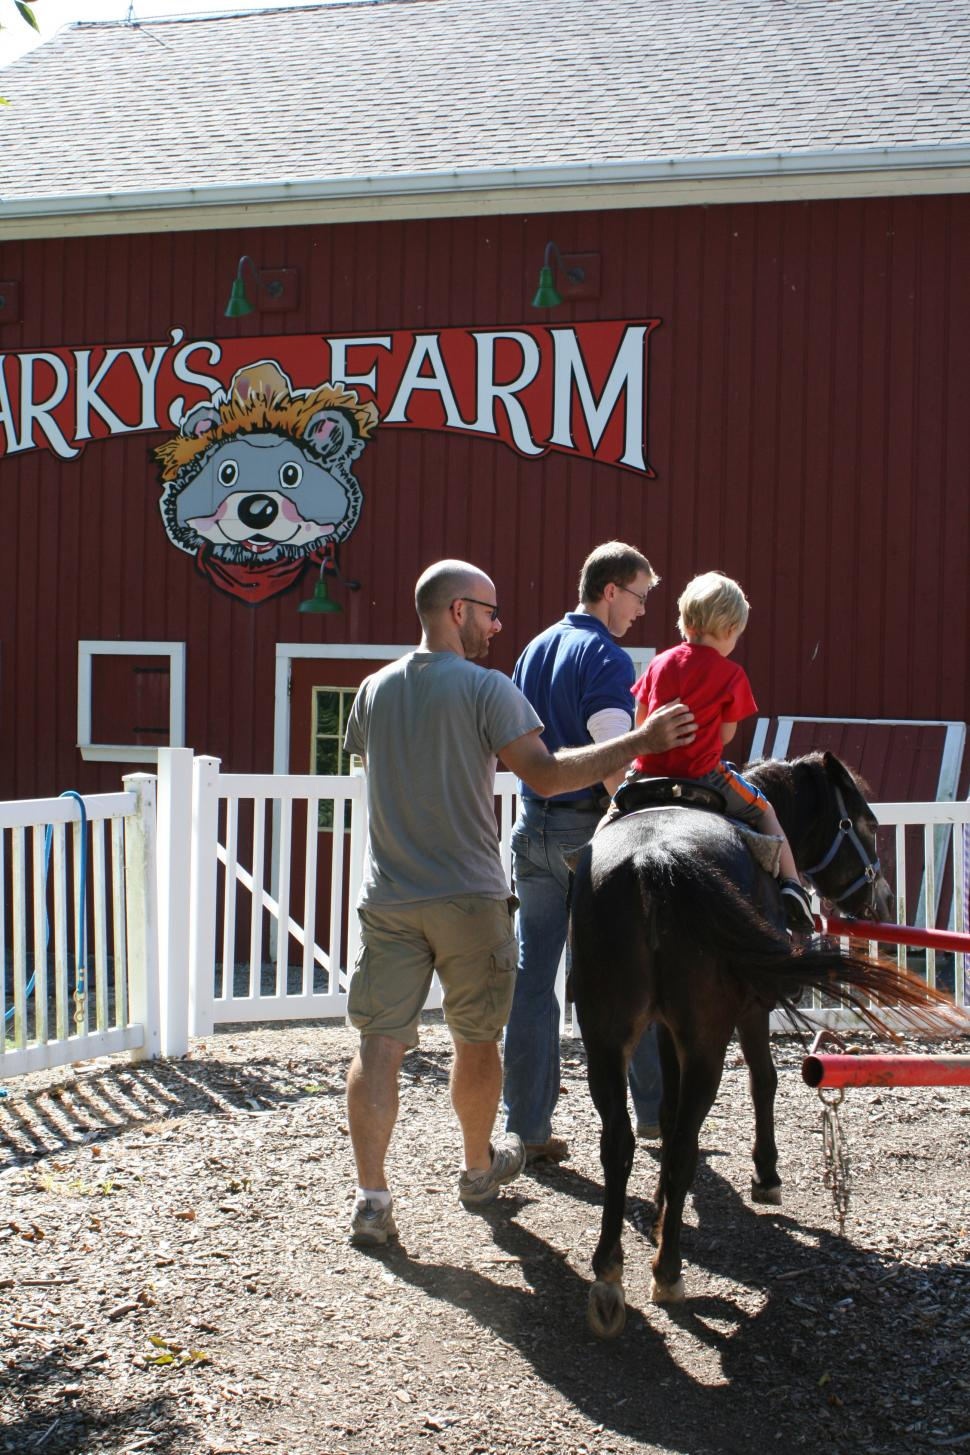 Parky's Farm - Photo courtesy of Great Parks of Hamilton County